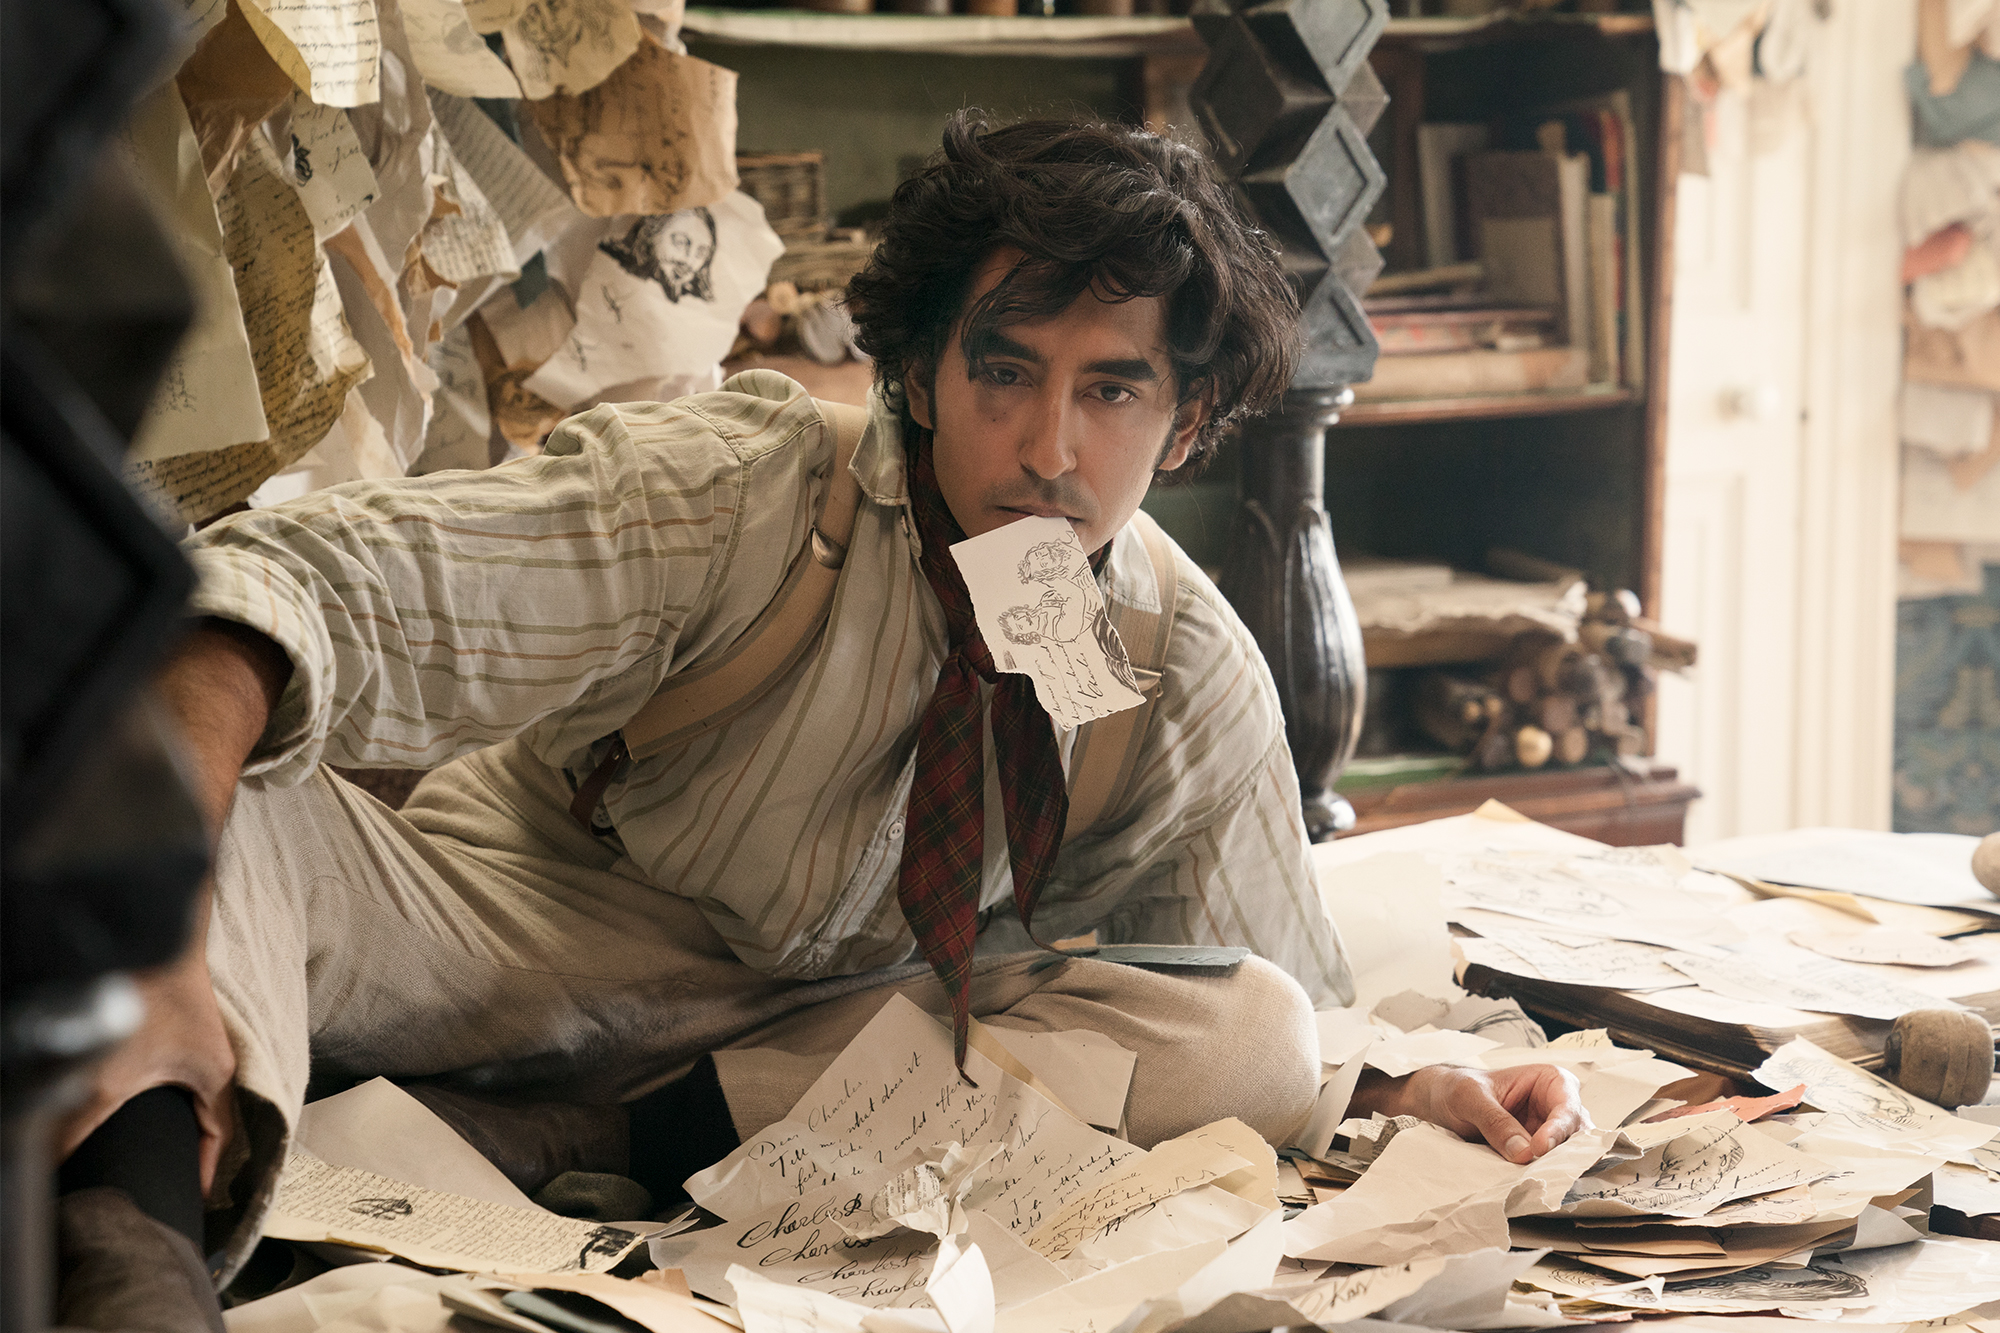 A young man sits in period garb, surrounded by papers.